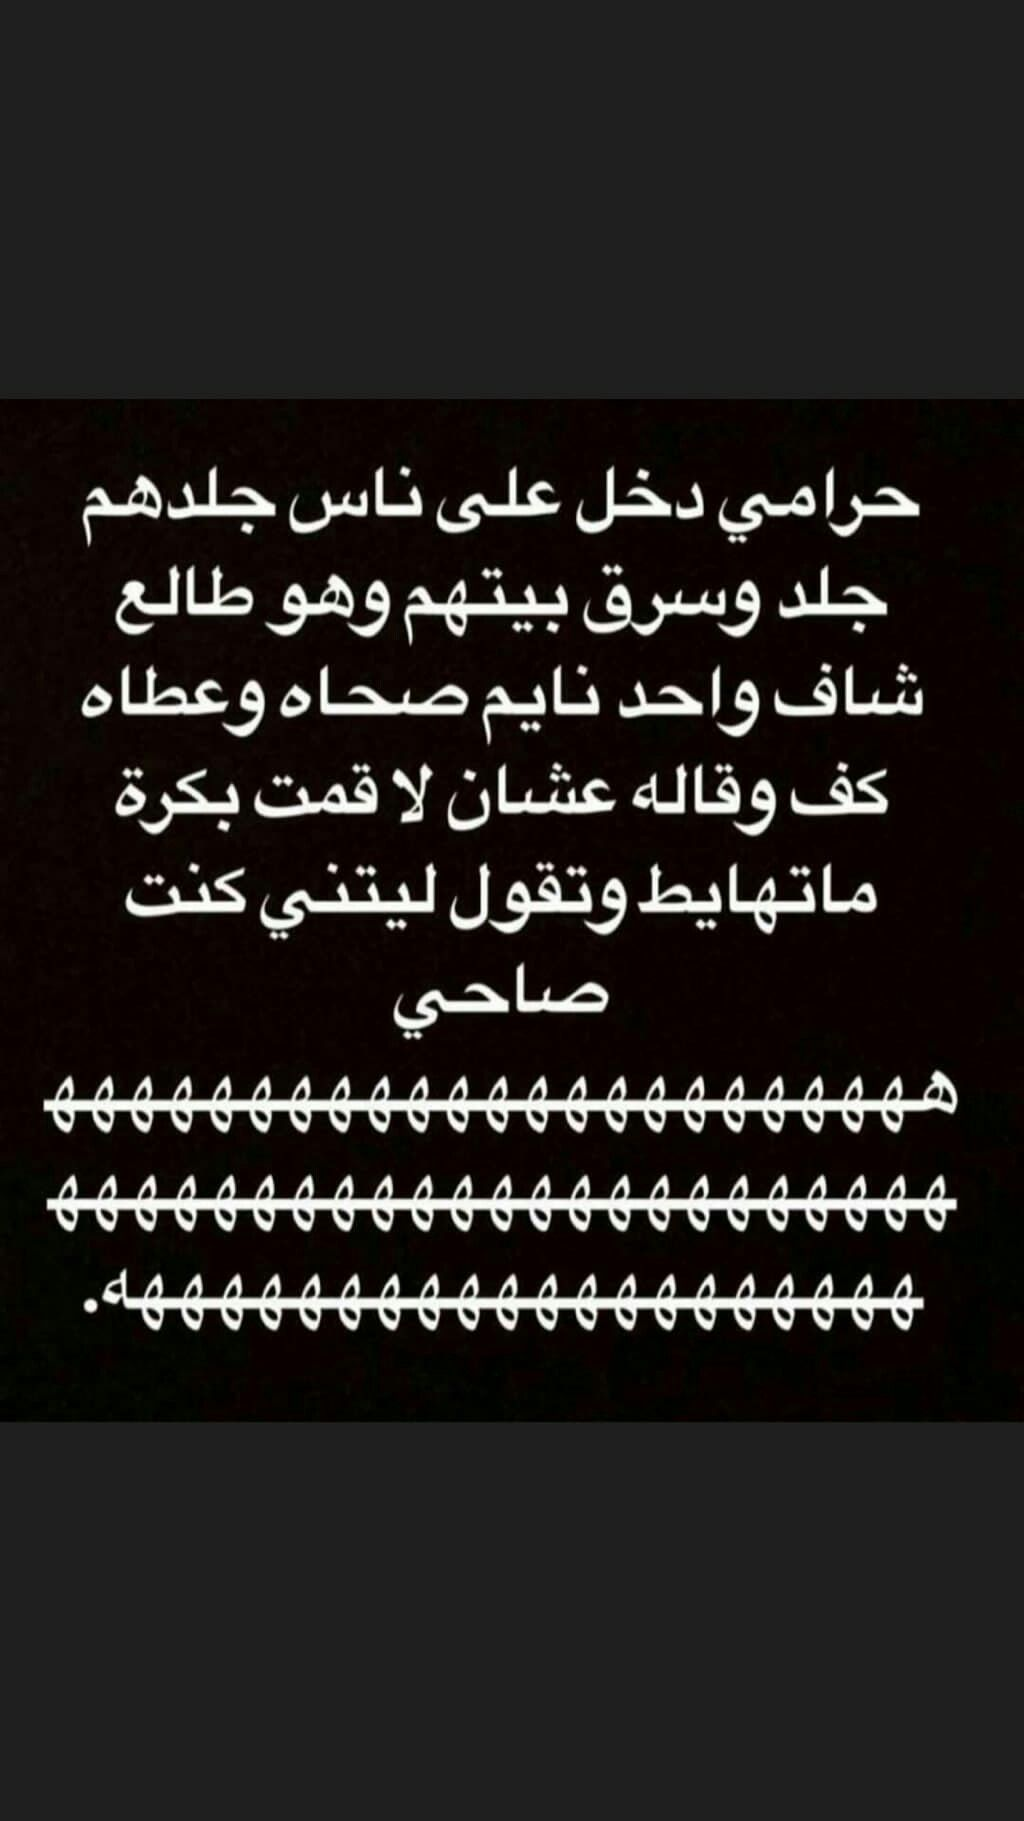 Pin By Leen Leen On ضحك و وناسه Funny Quotes For Instagram Fun Quotes Funny Funny Words